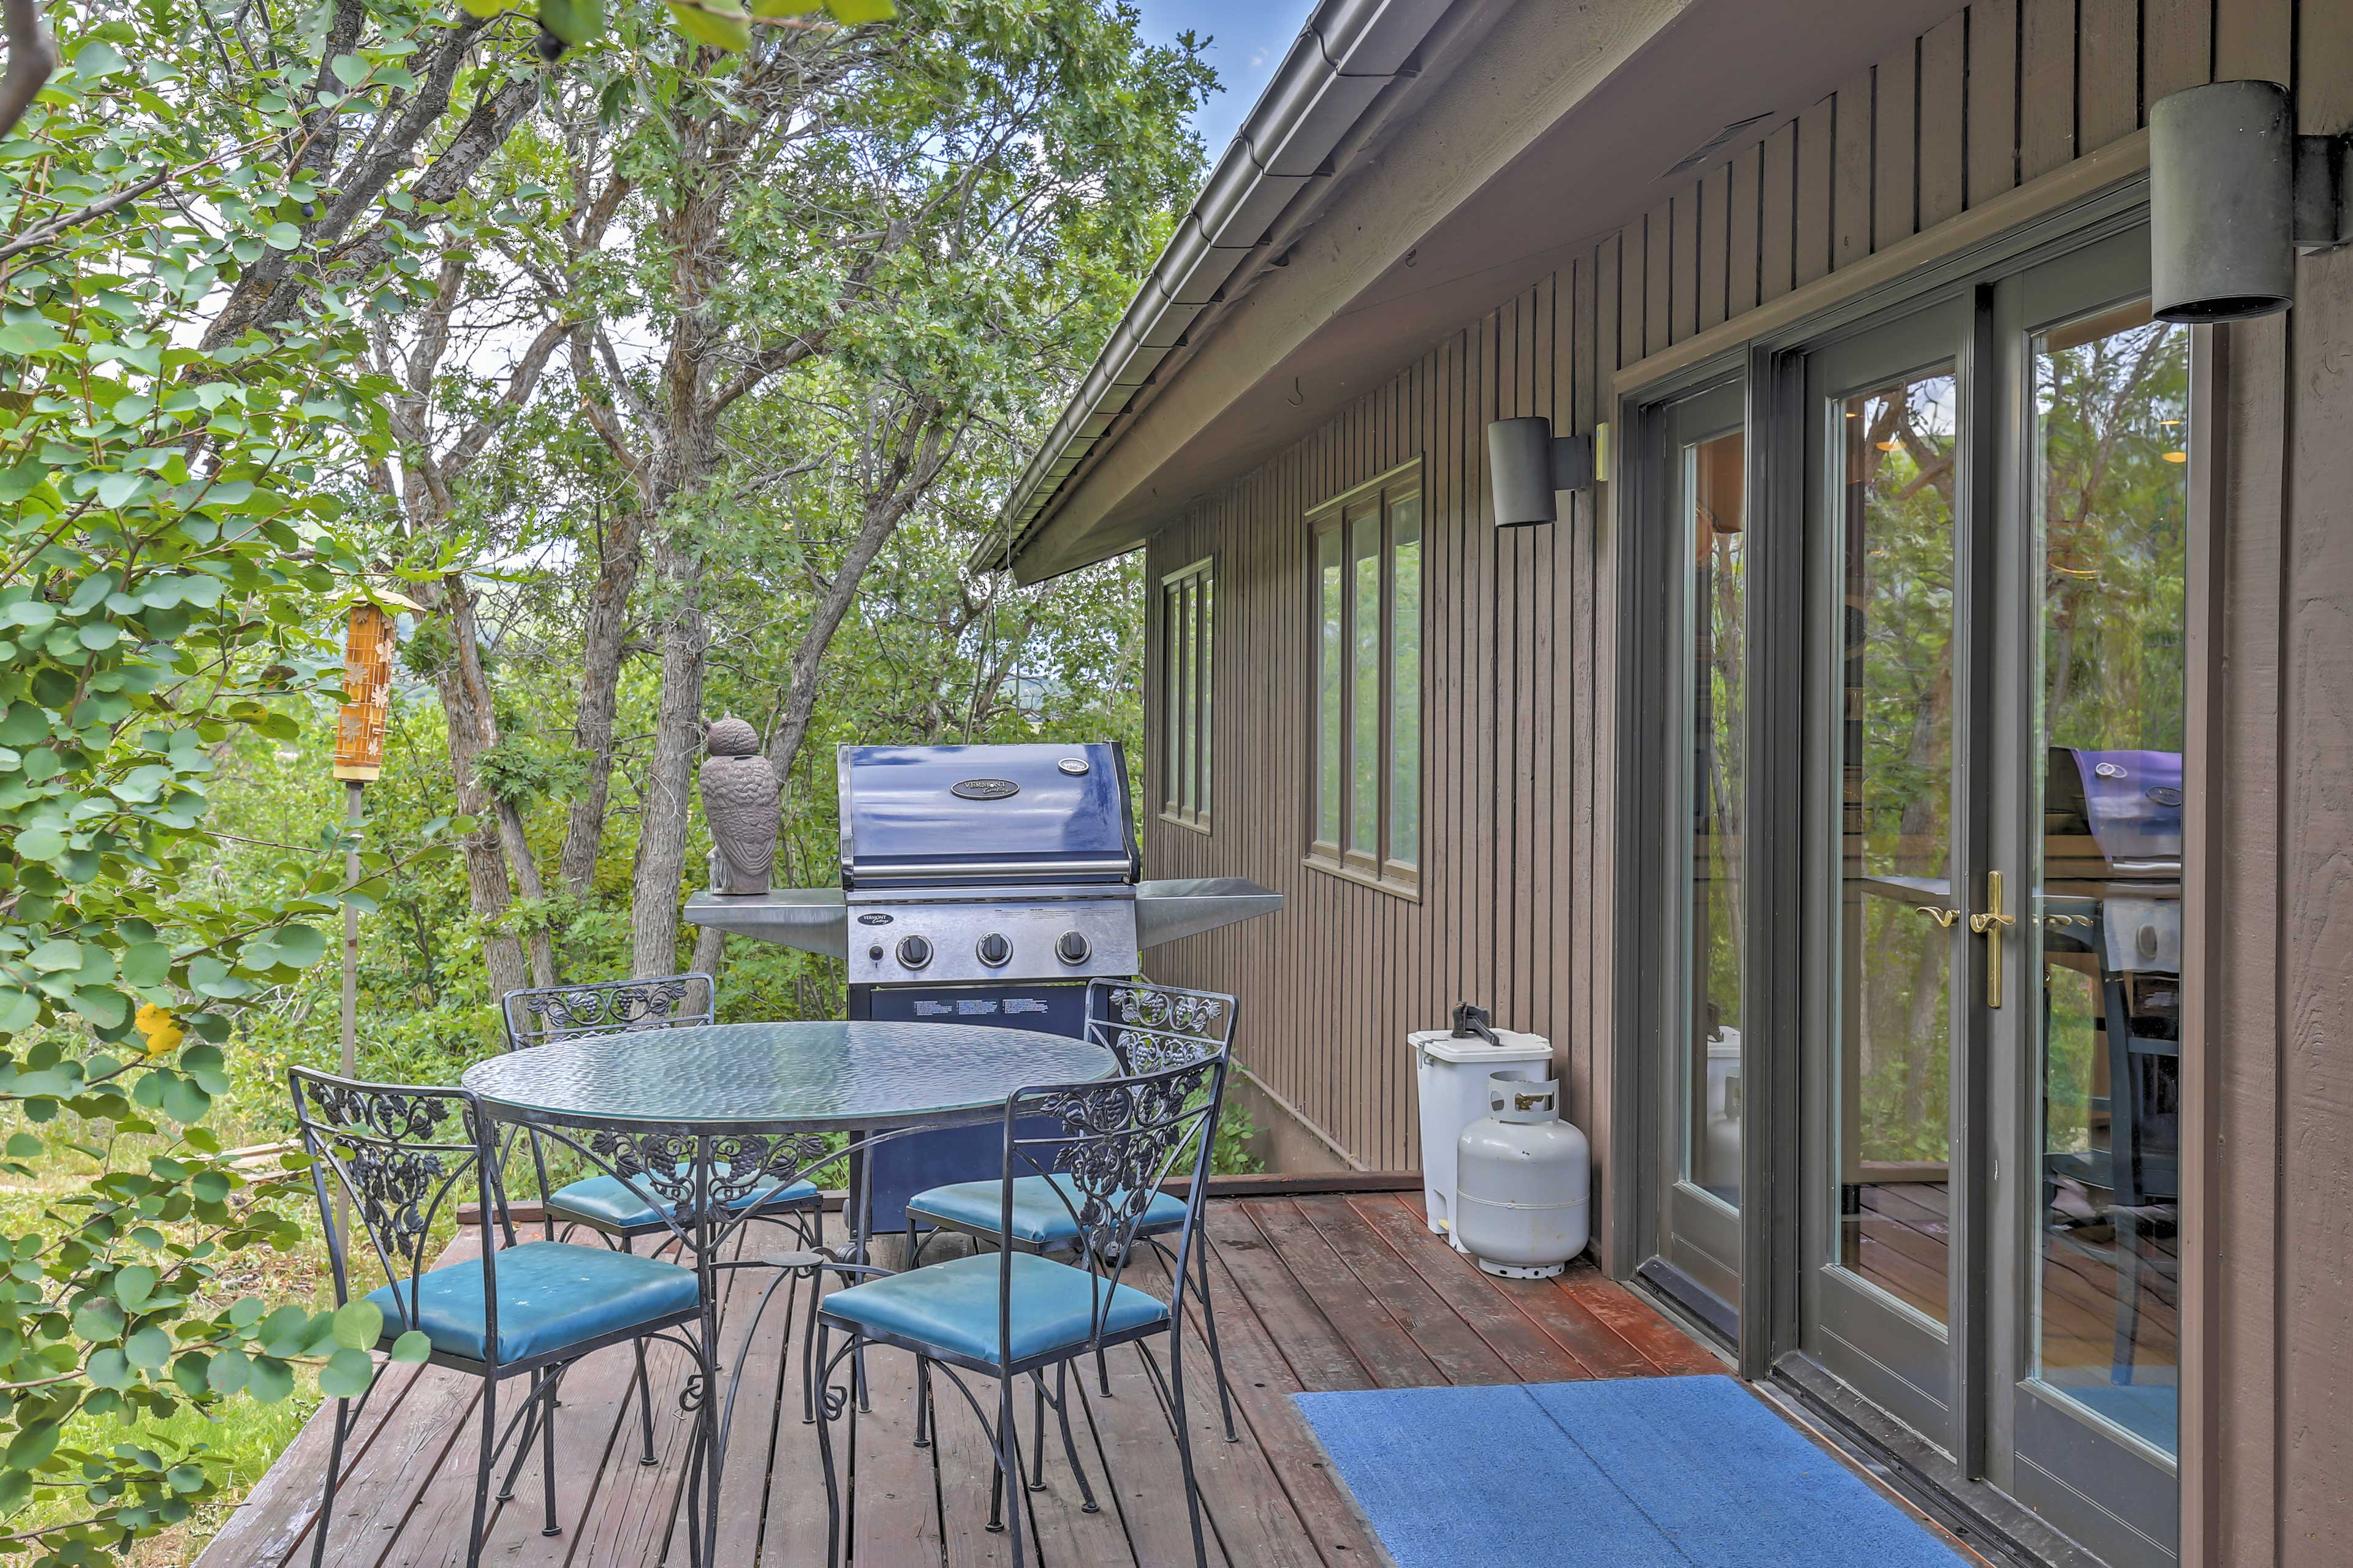 Host a family cookout on the deck!